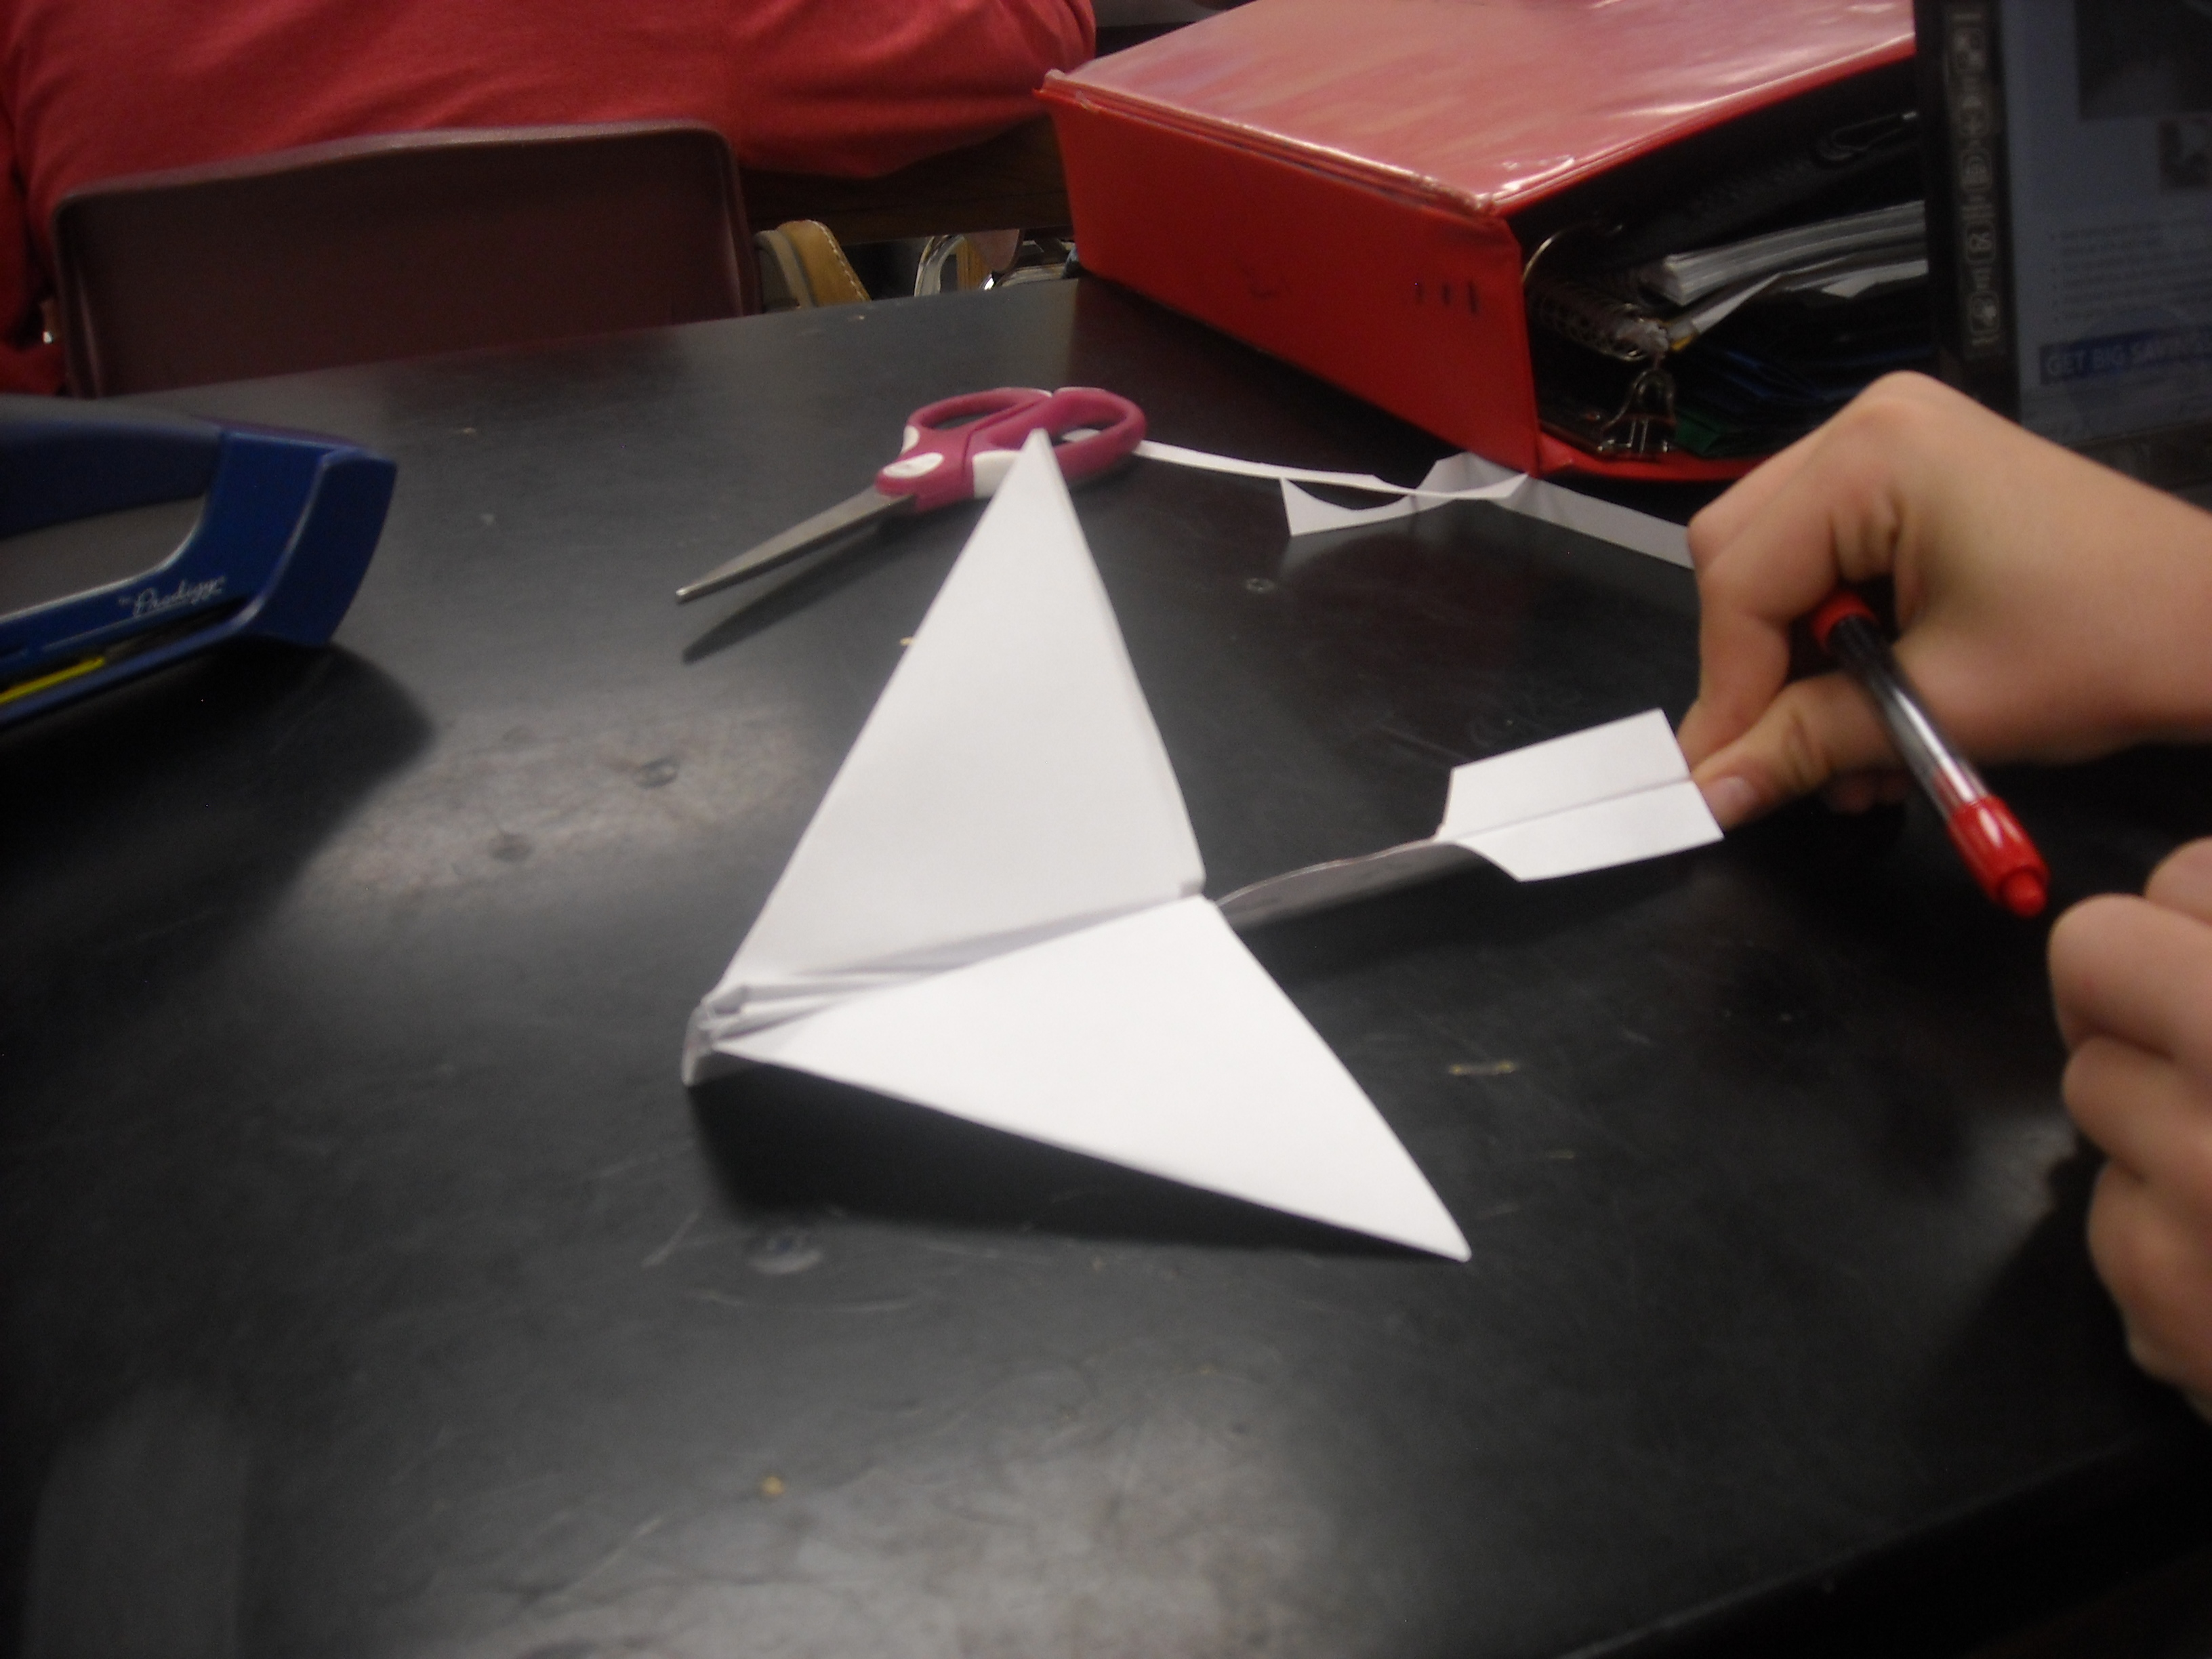 Best Paper Airplane!!!